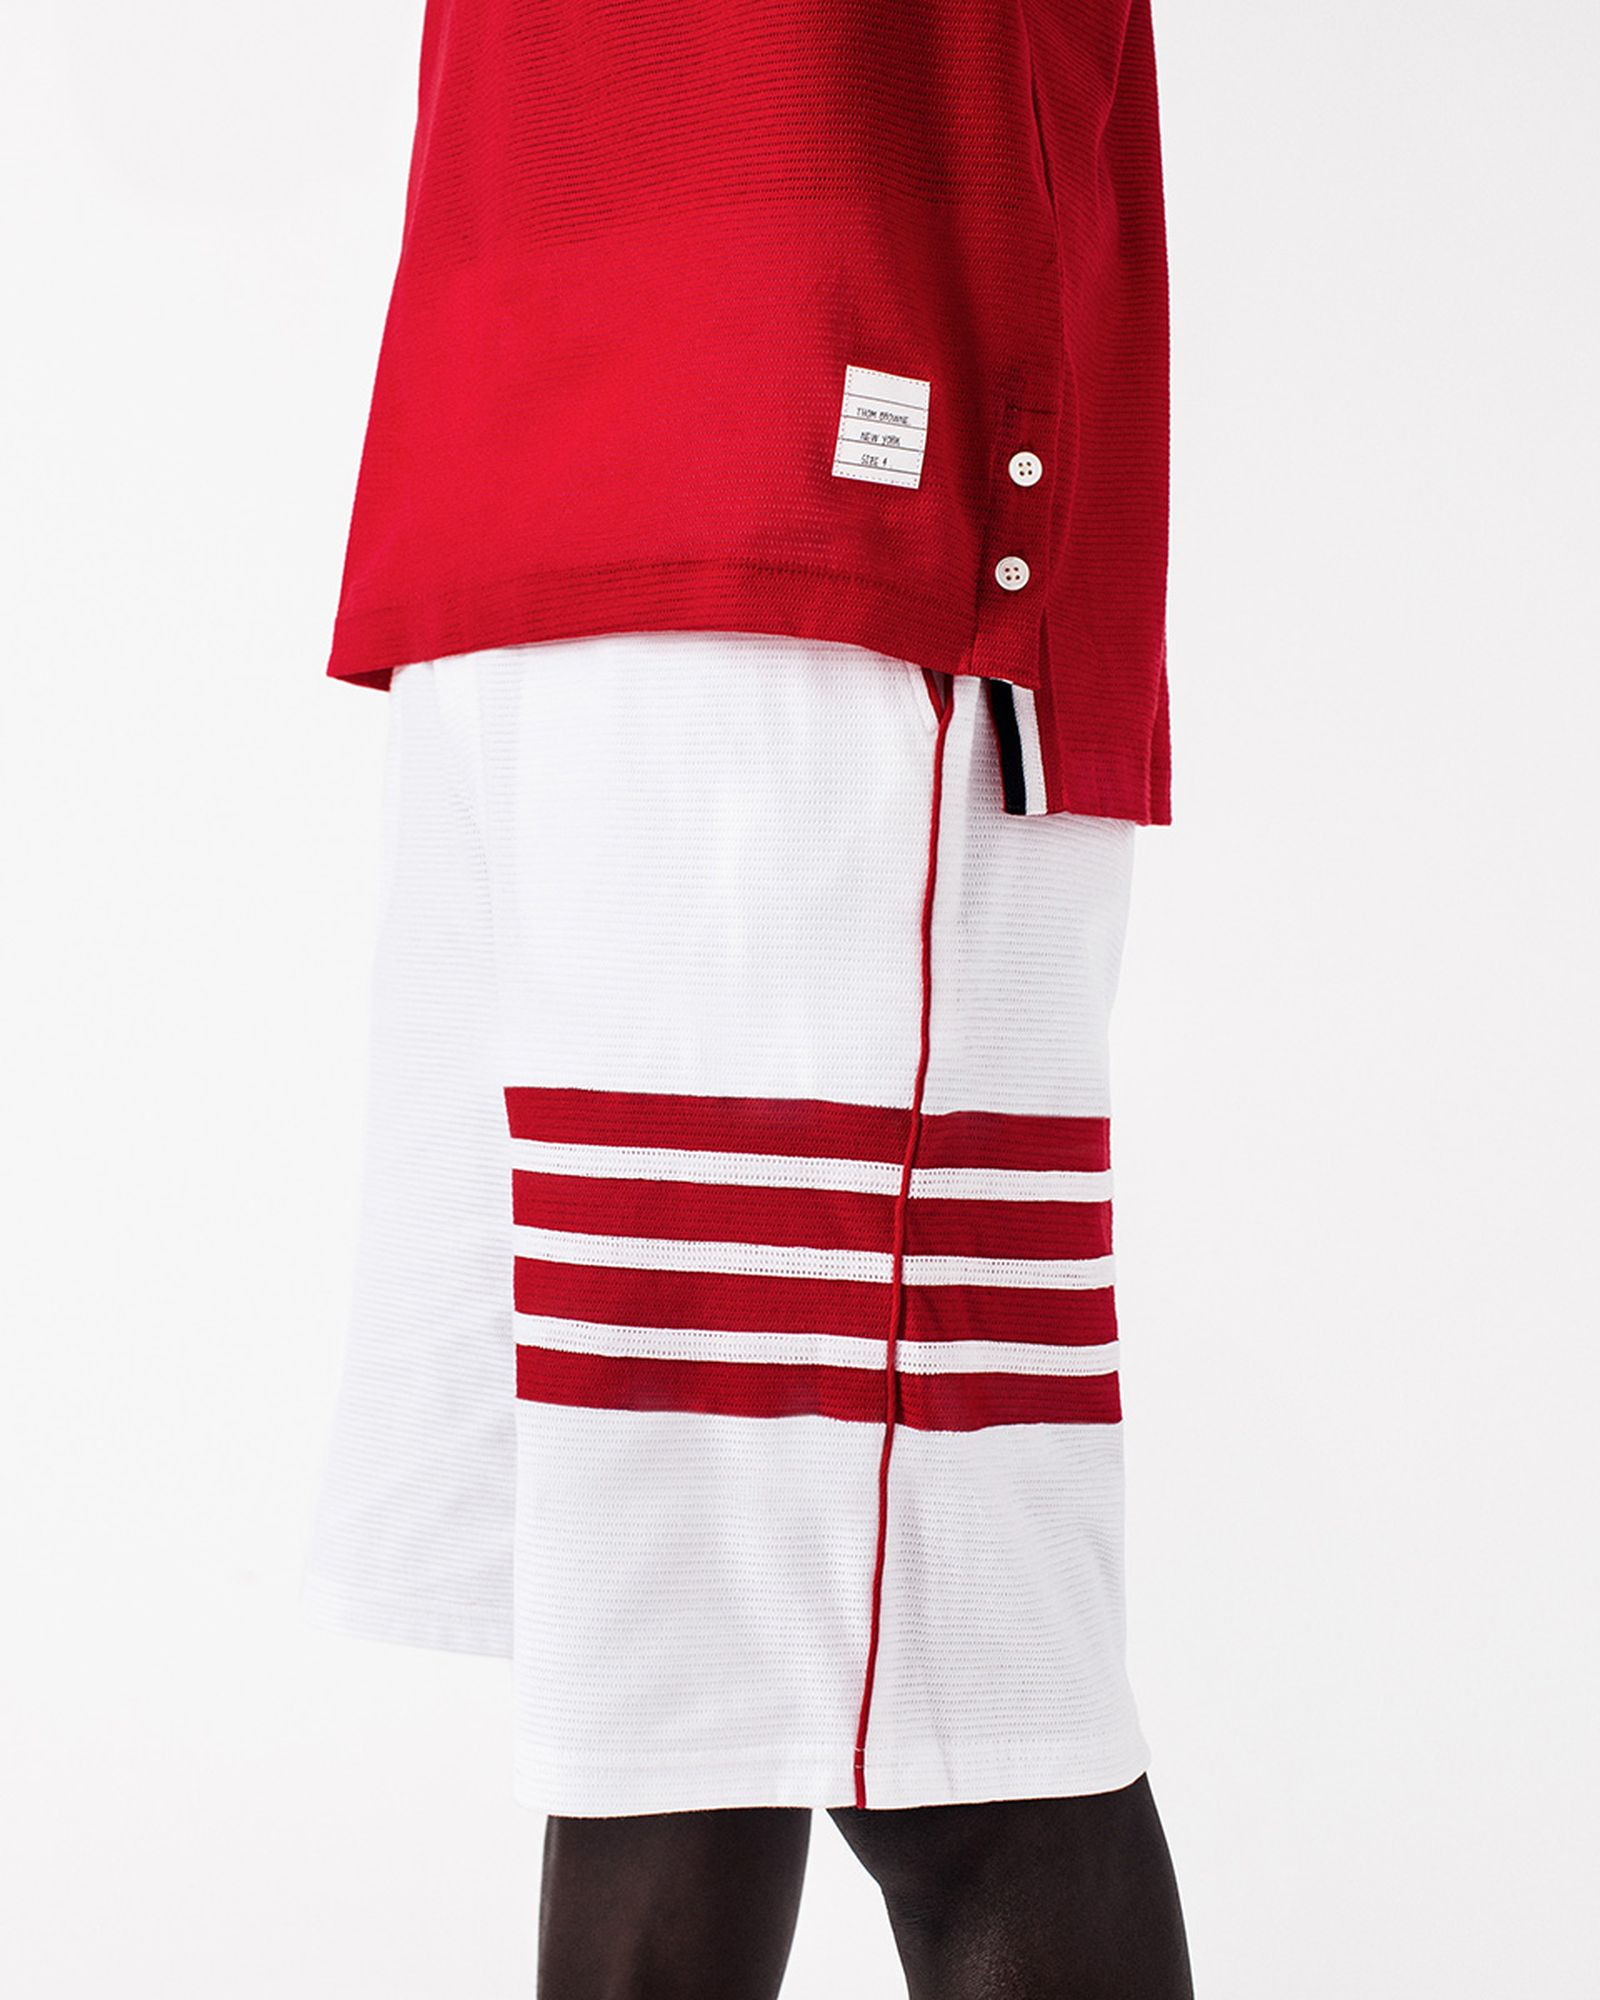 unknwn-thom-browne-collection-02